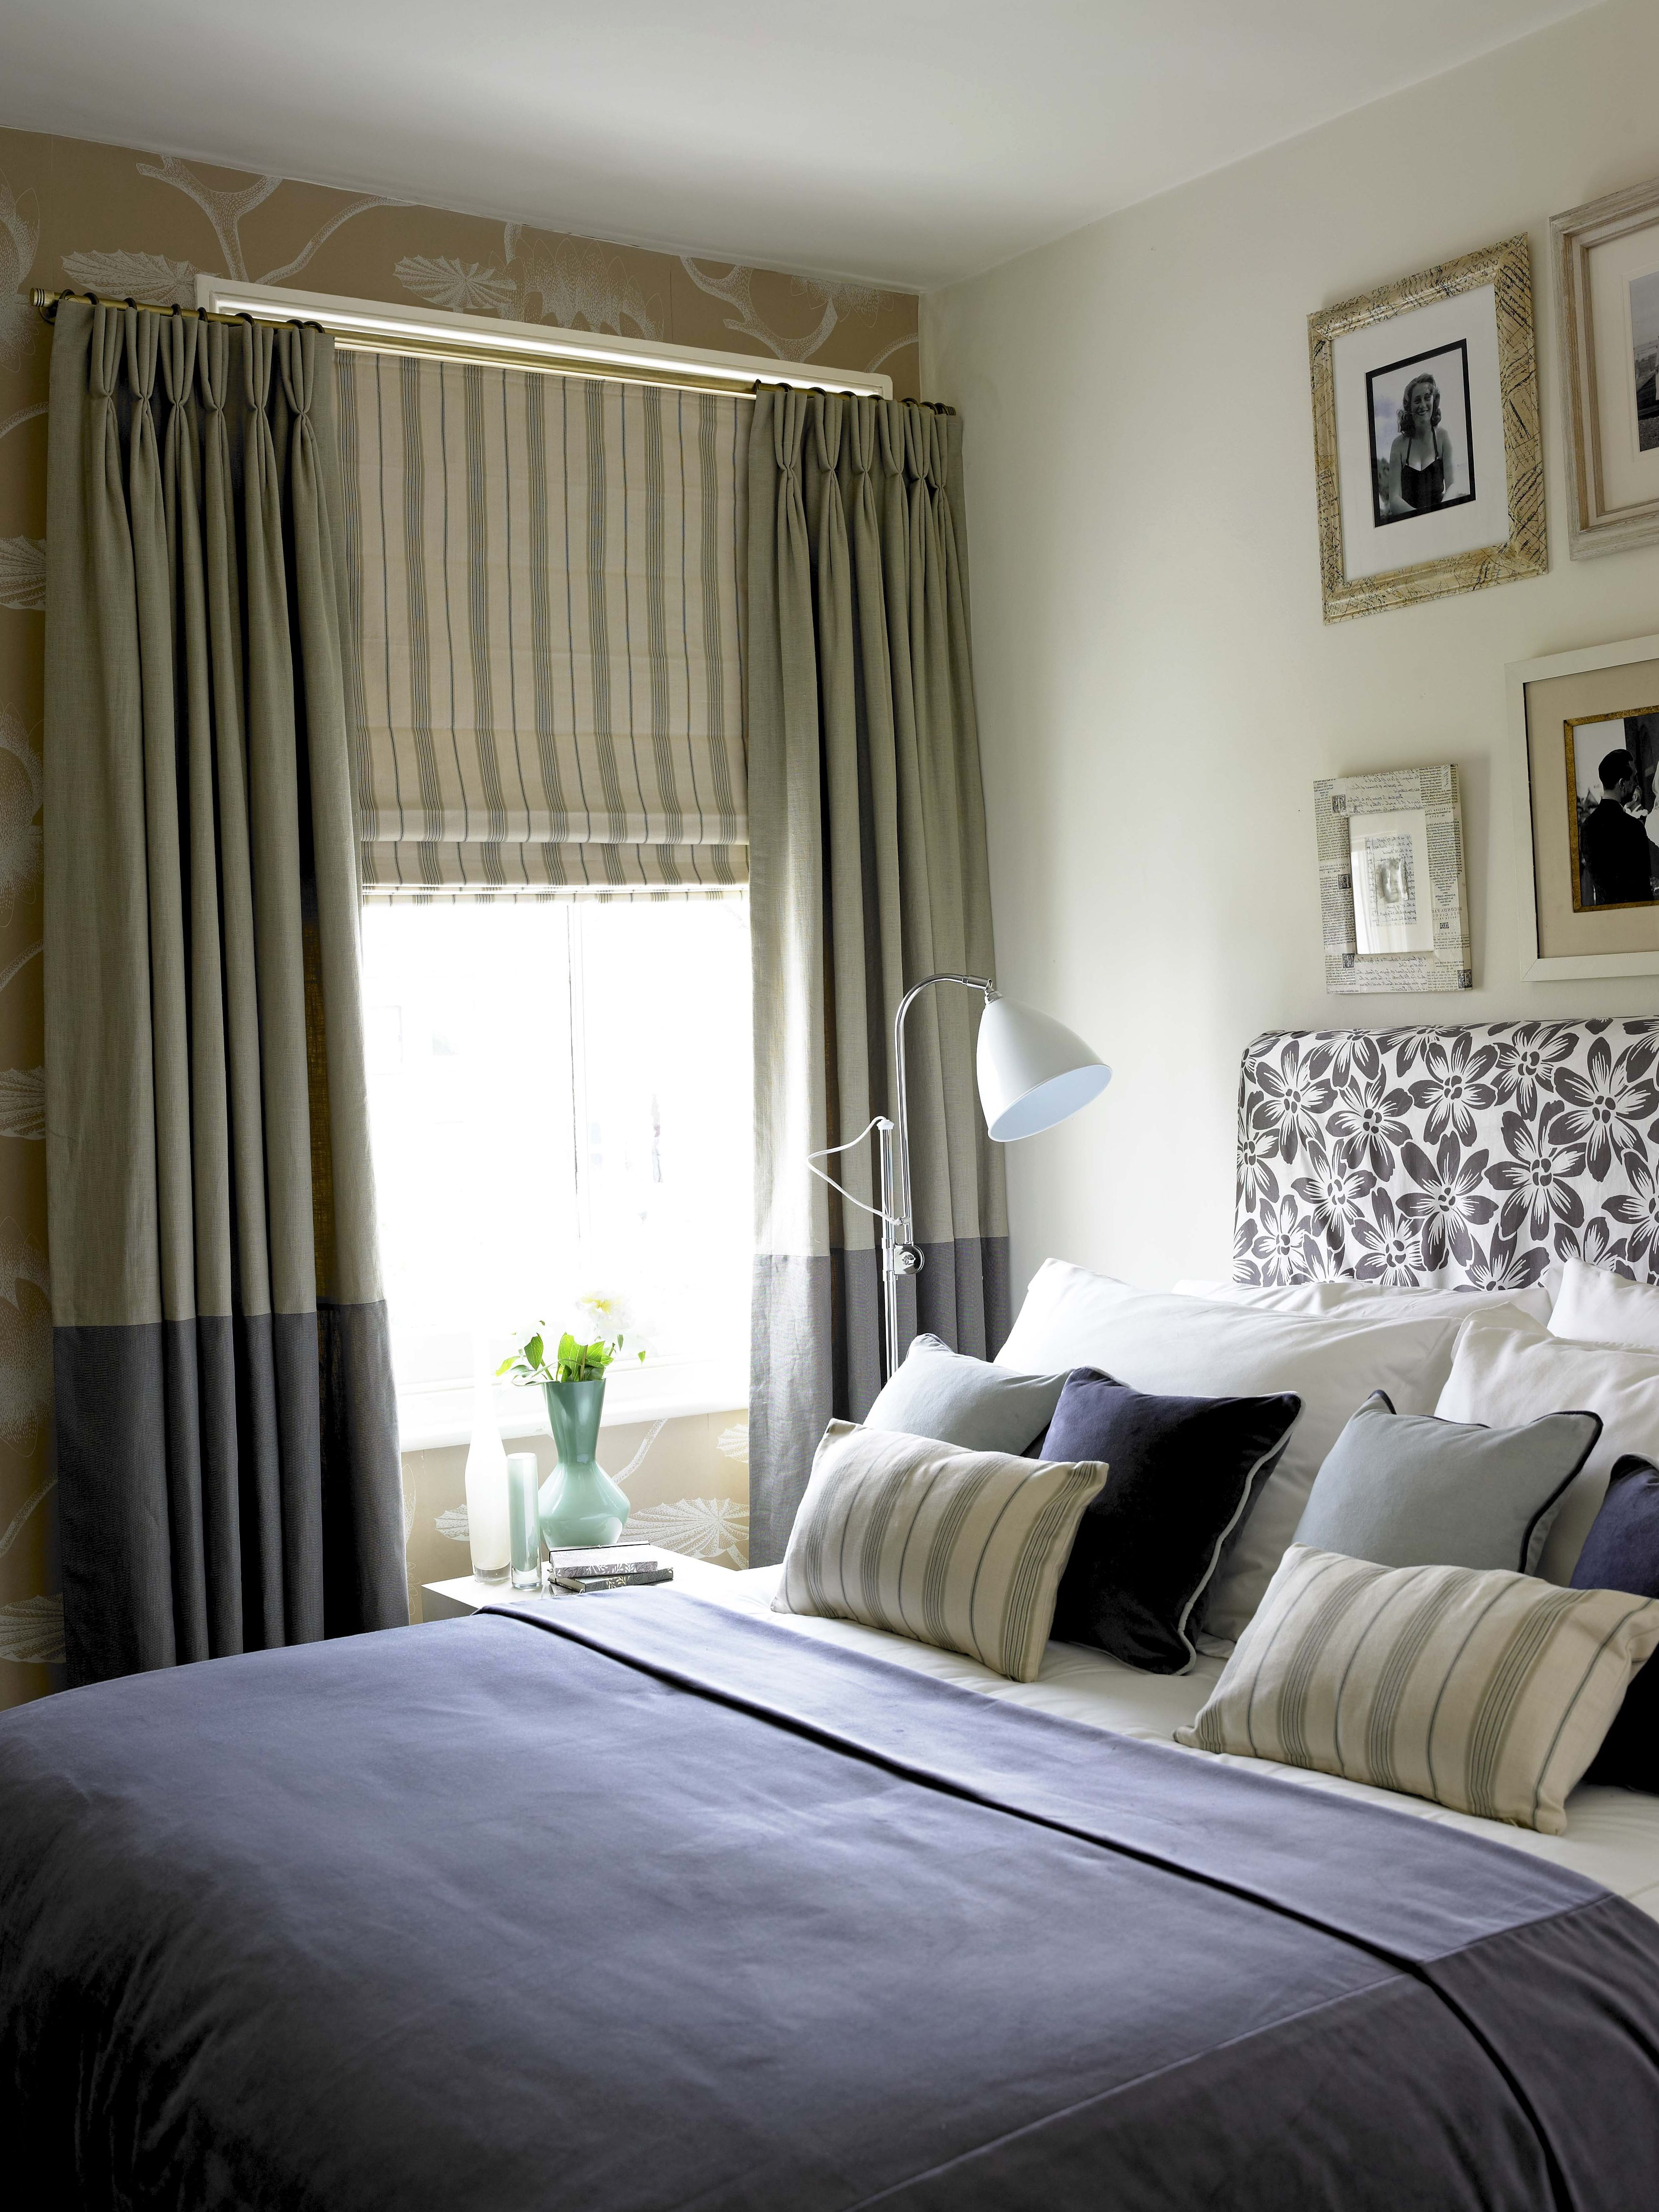 Blinds And Curtains Combination Bedroom Valance Ideas Curtain Drapery